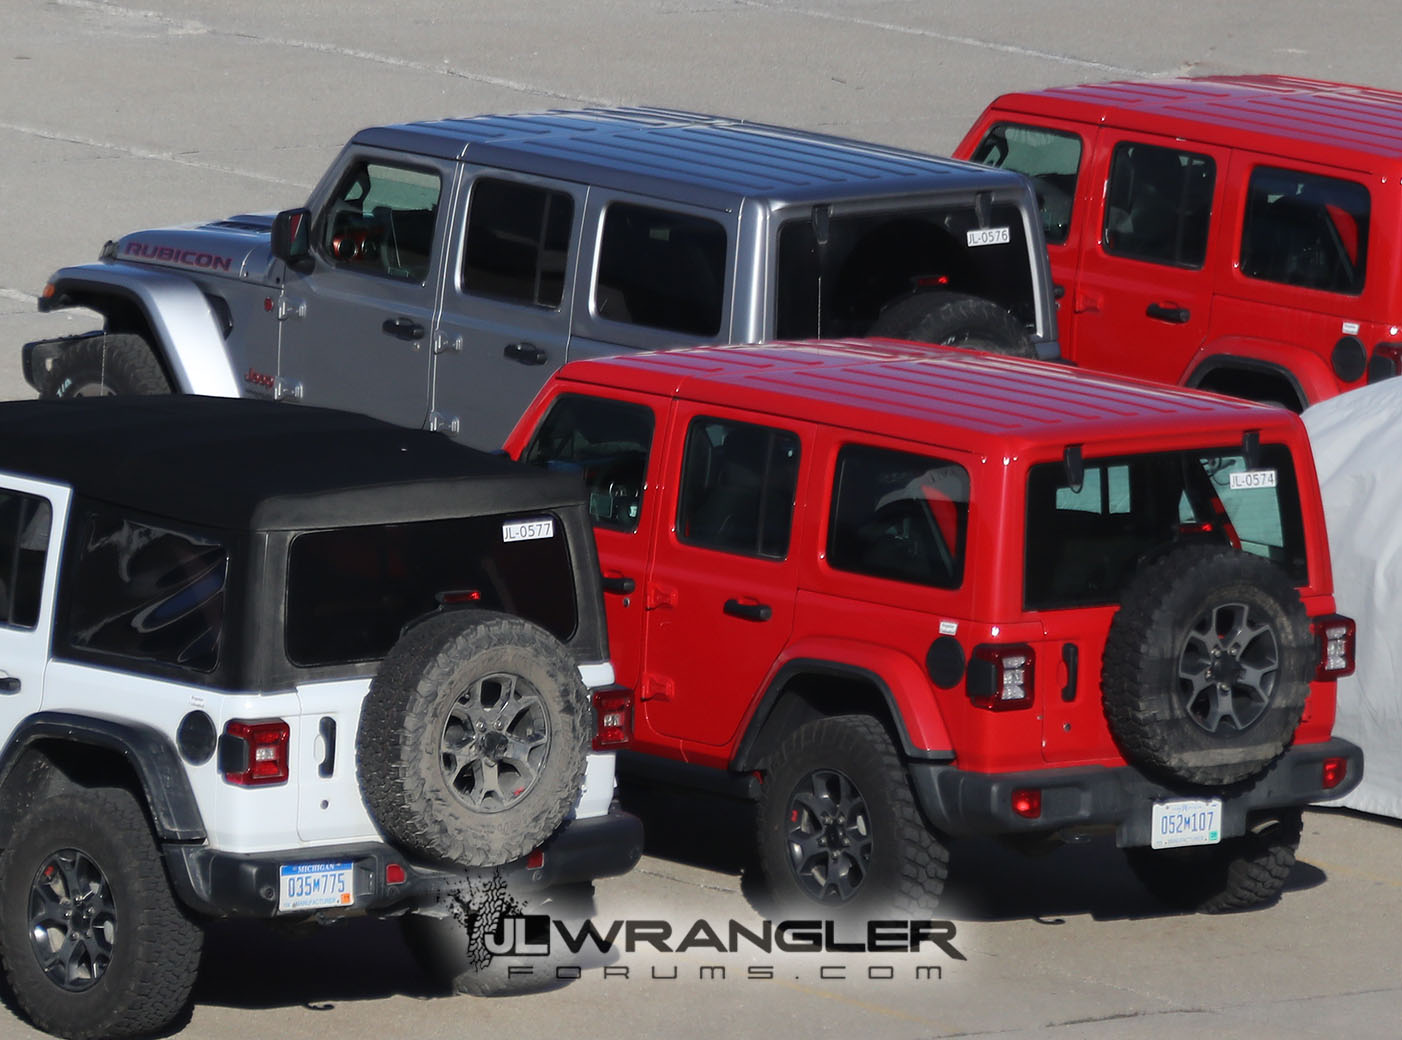 2018-Jeep-Wrangler-JL-JLU-Body-Painted-Color-Top-3-Red-Silver.jpg